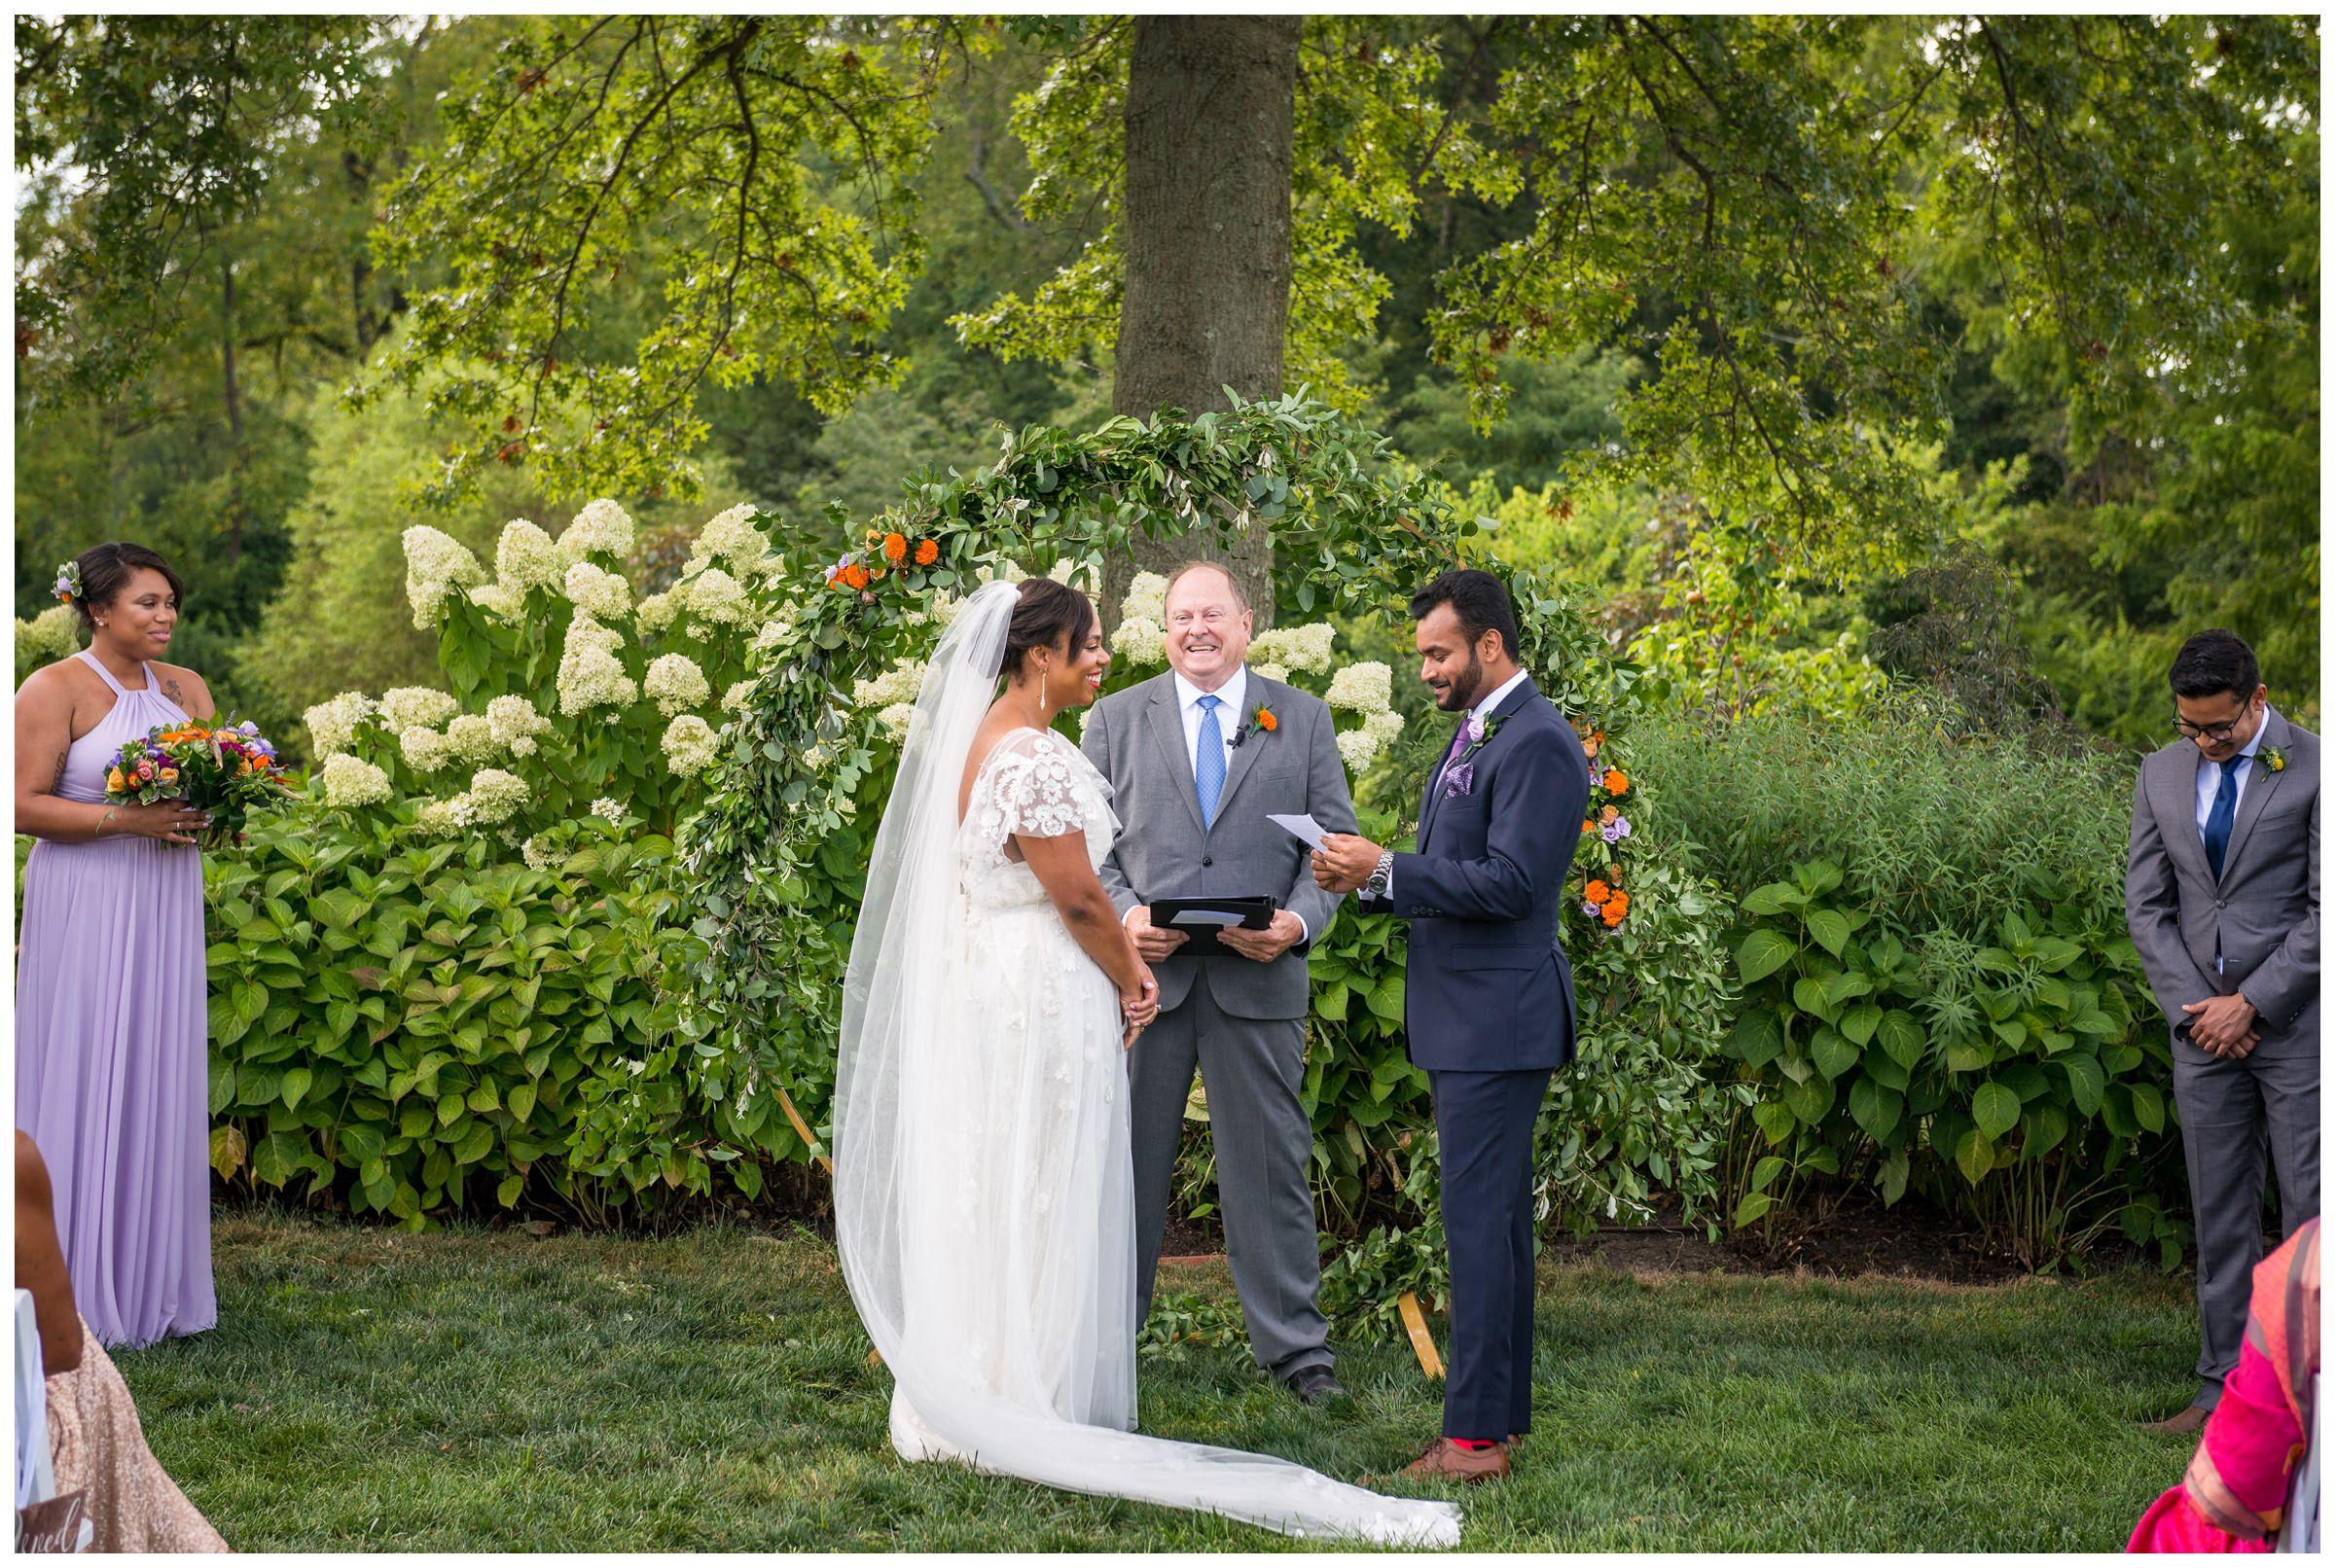 groom reading vows during wedding ceremony in front of floral moongate arch at Jorgensen Farms flower field